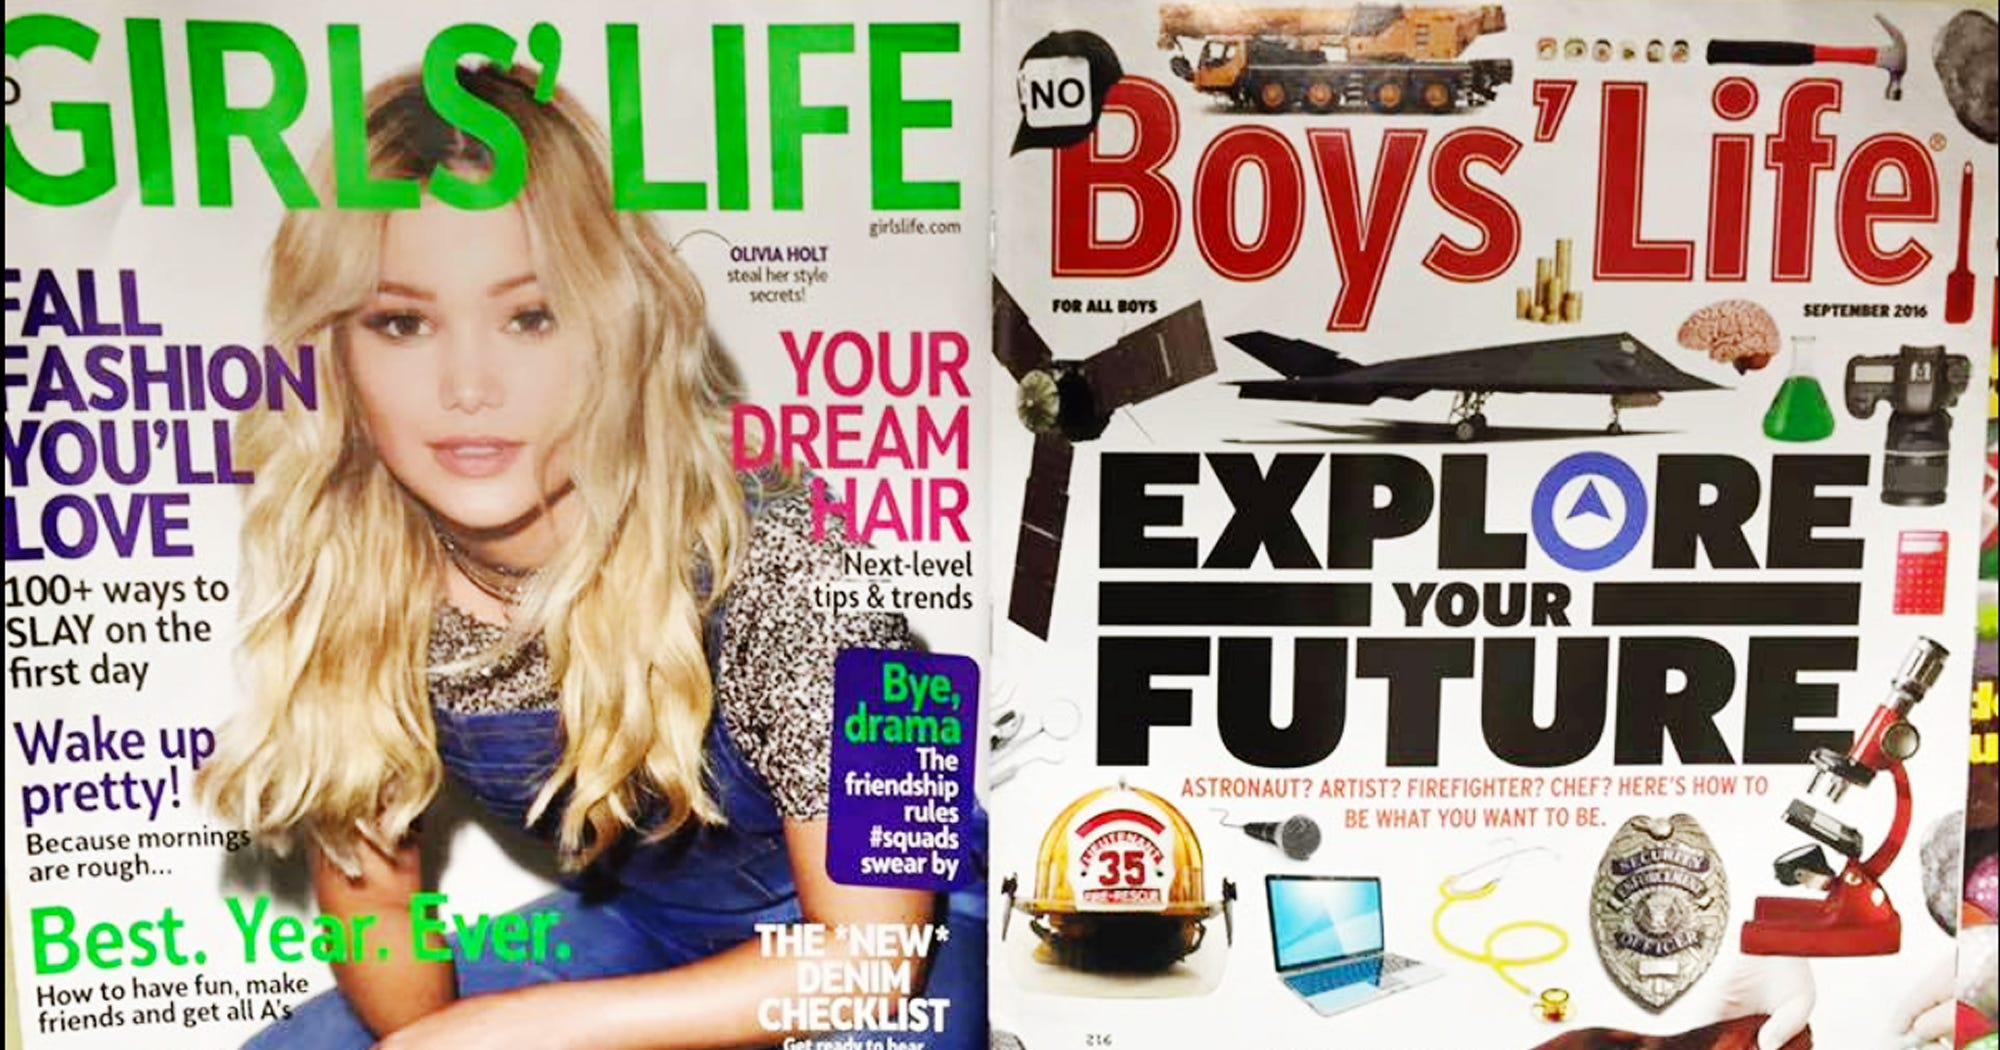 Girls Life Magazine Sexist Cover Facebook Post